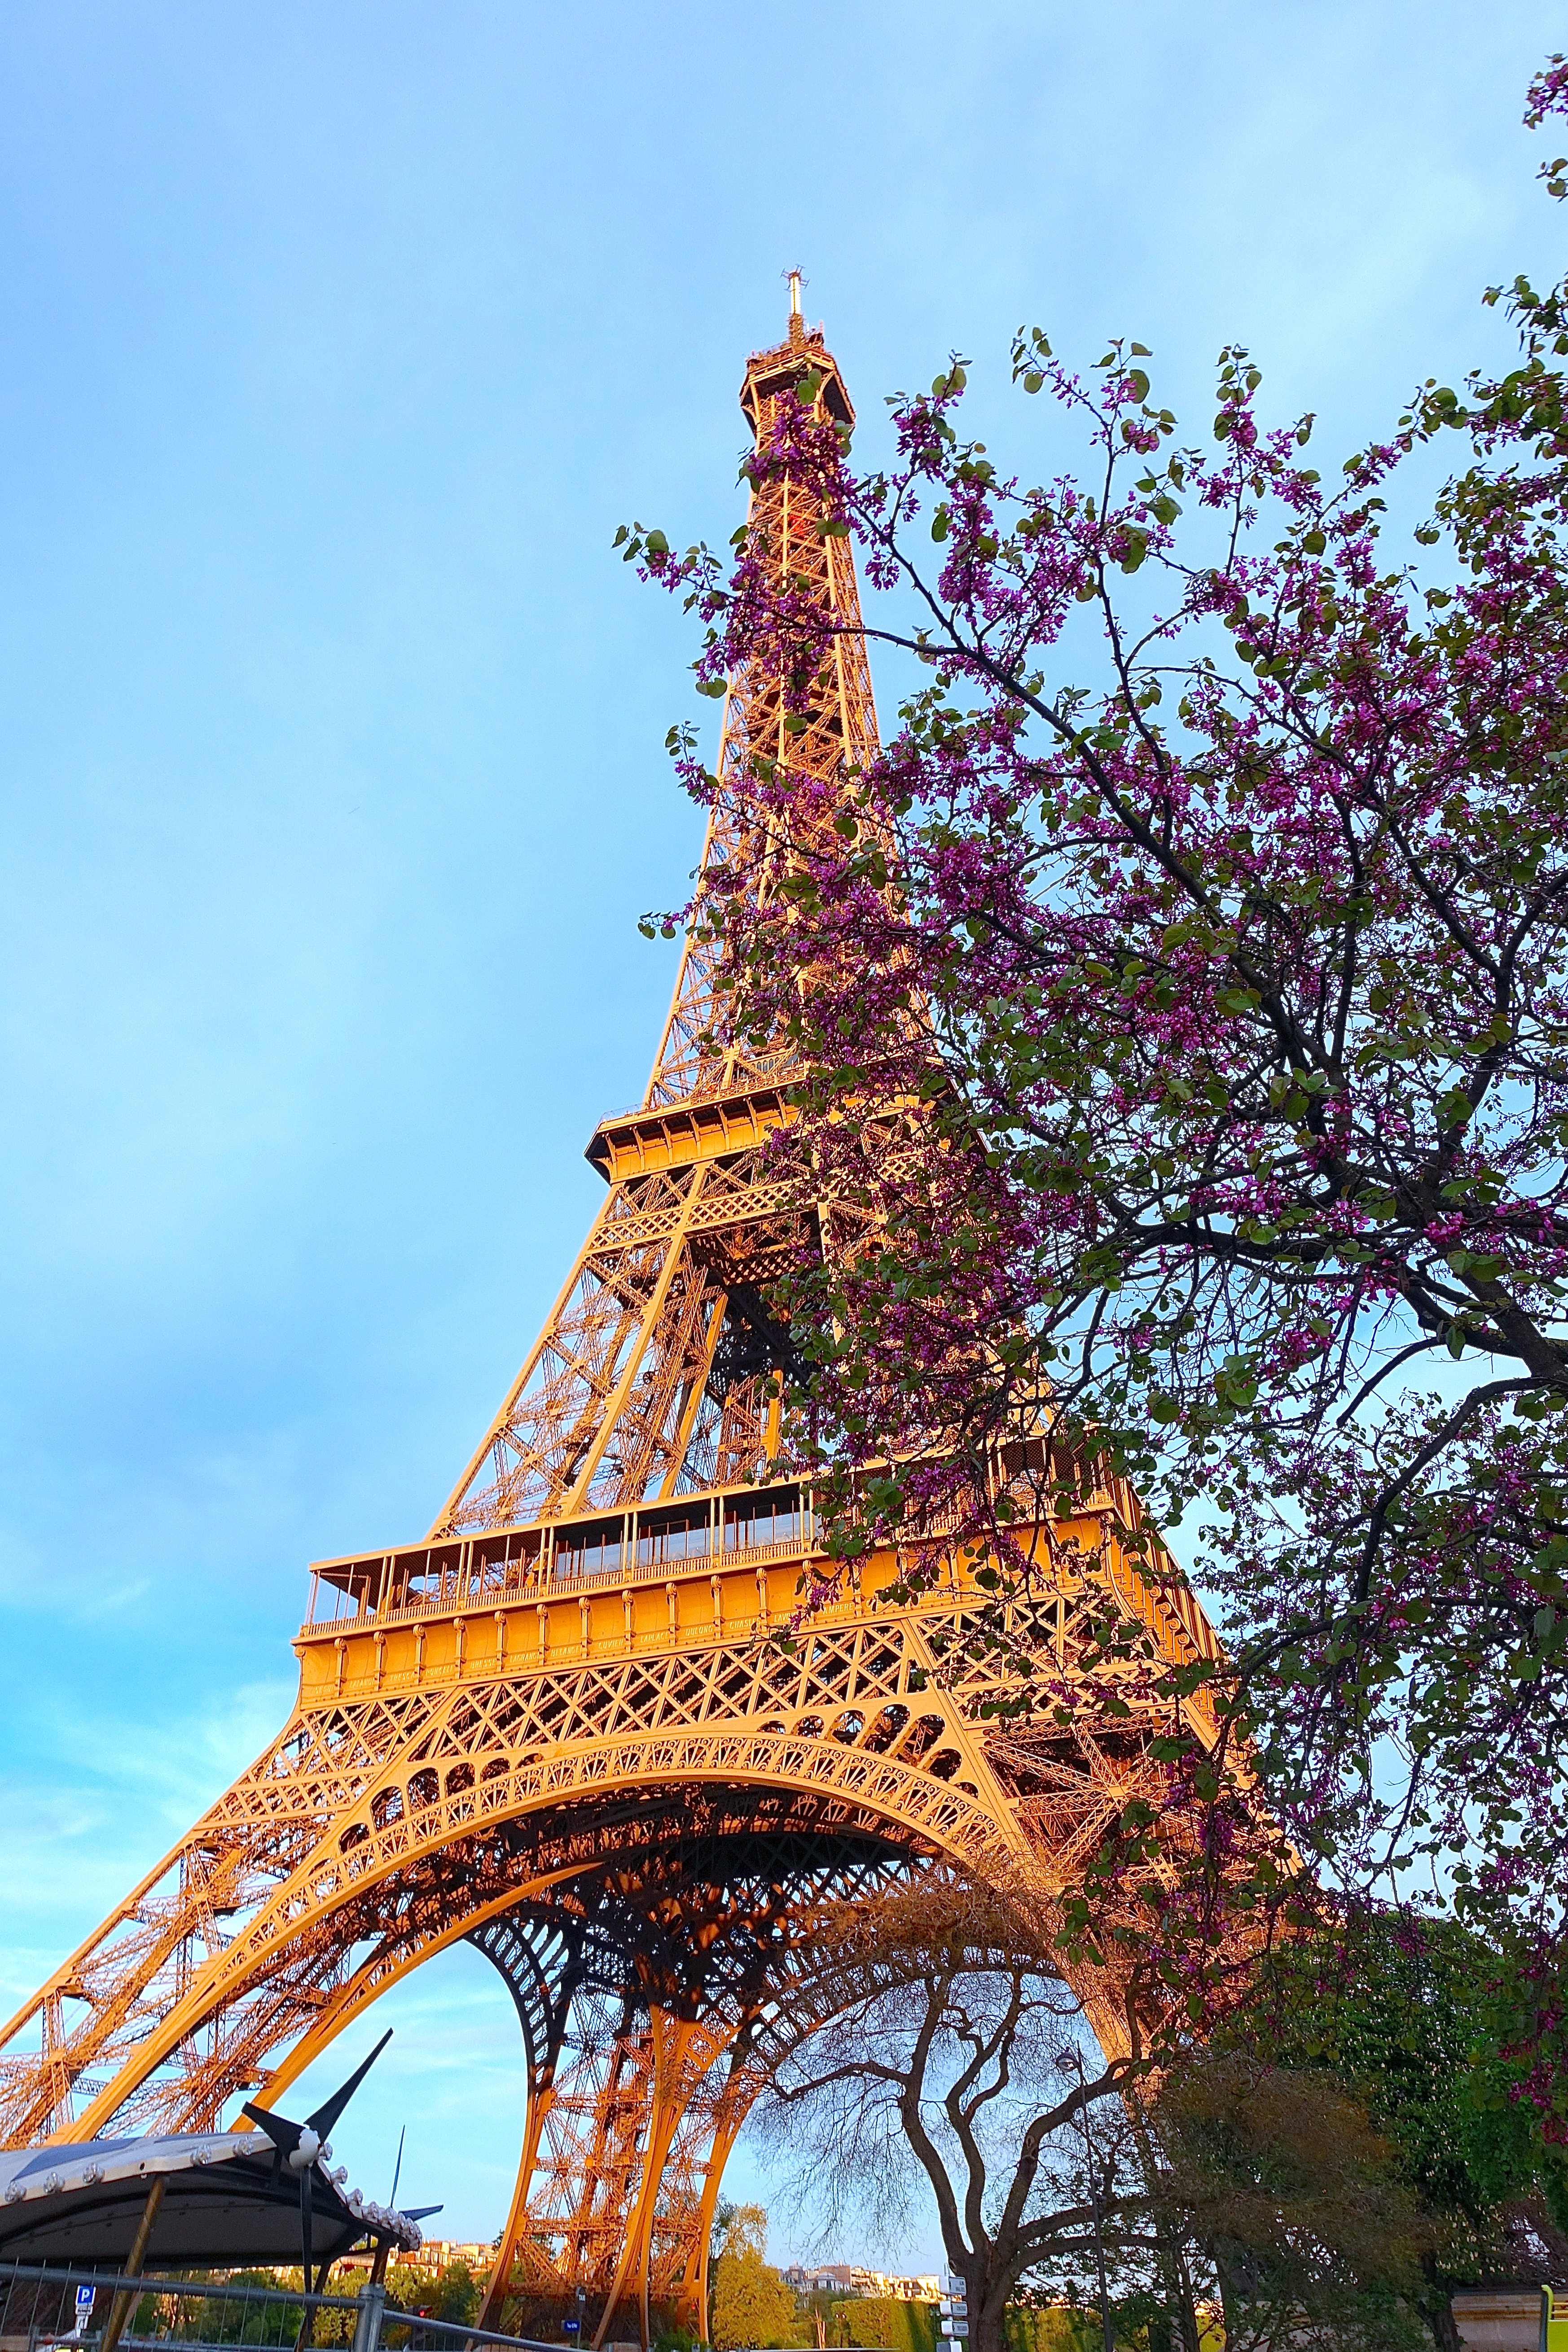 Eiffel Tower and flowering tree